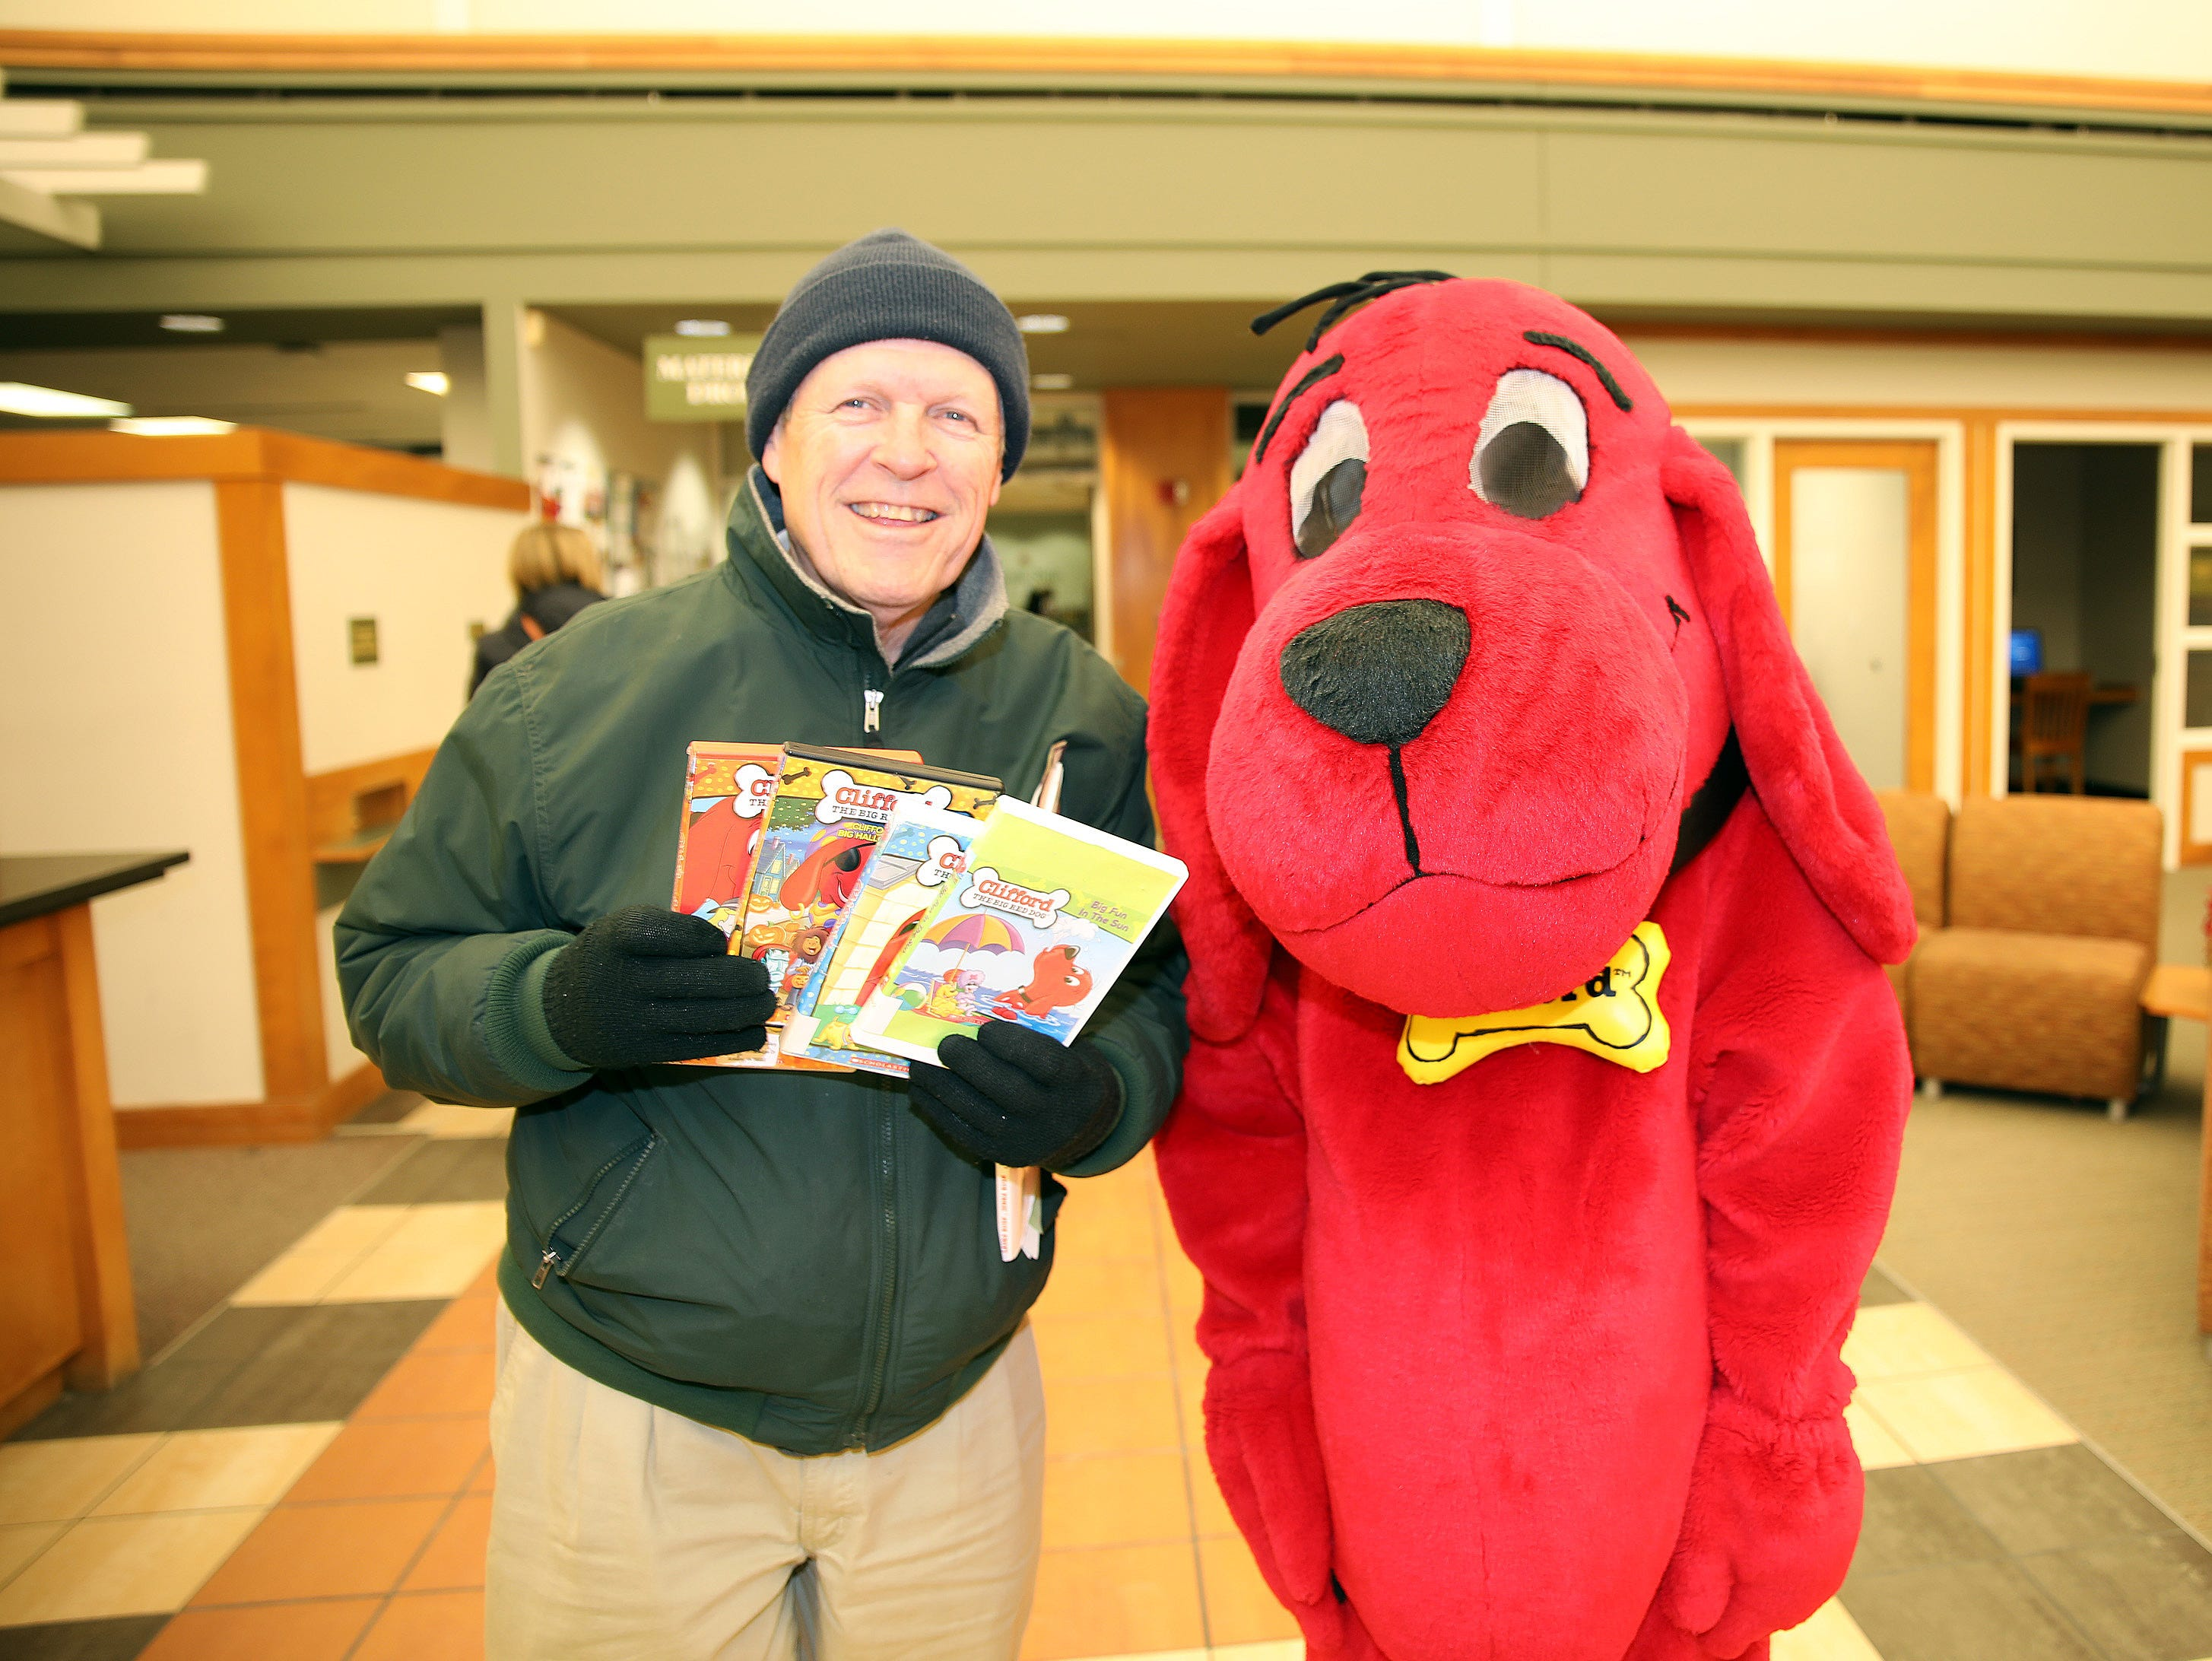 Long-time library patron Curt Bachman of Ankeny stops by to celebrate during a birthday party for Clifford the Big Red Dog at Kirkendall Public Library in Ankeny on Tuesday, Feb. 5, 2019.